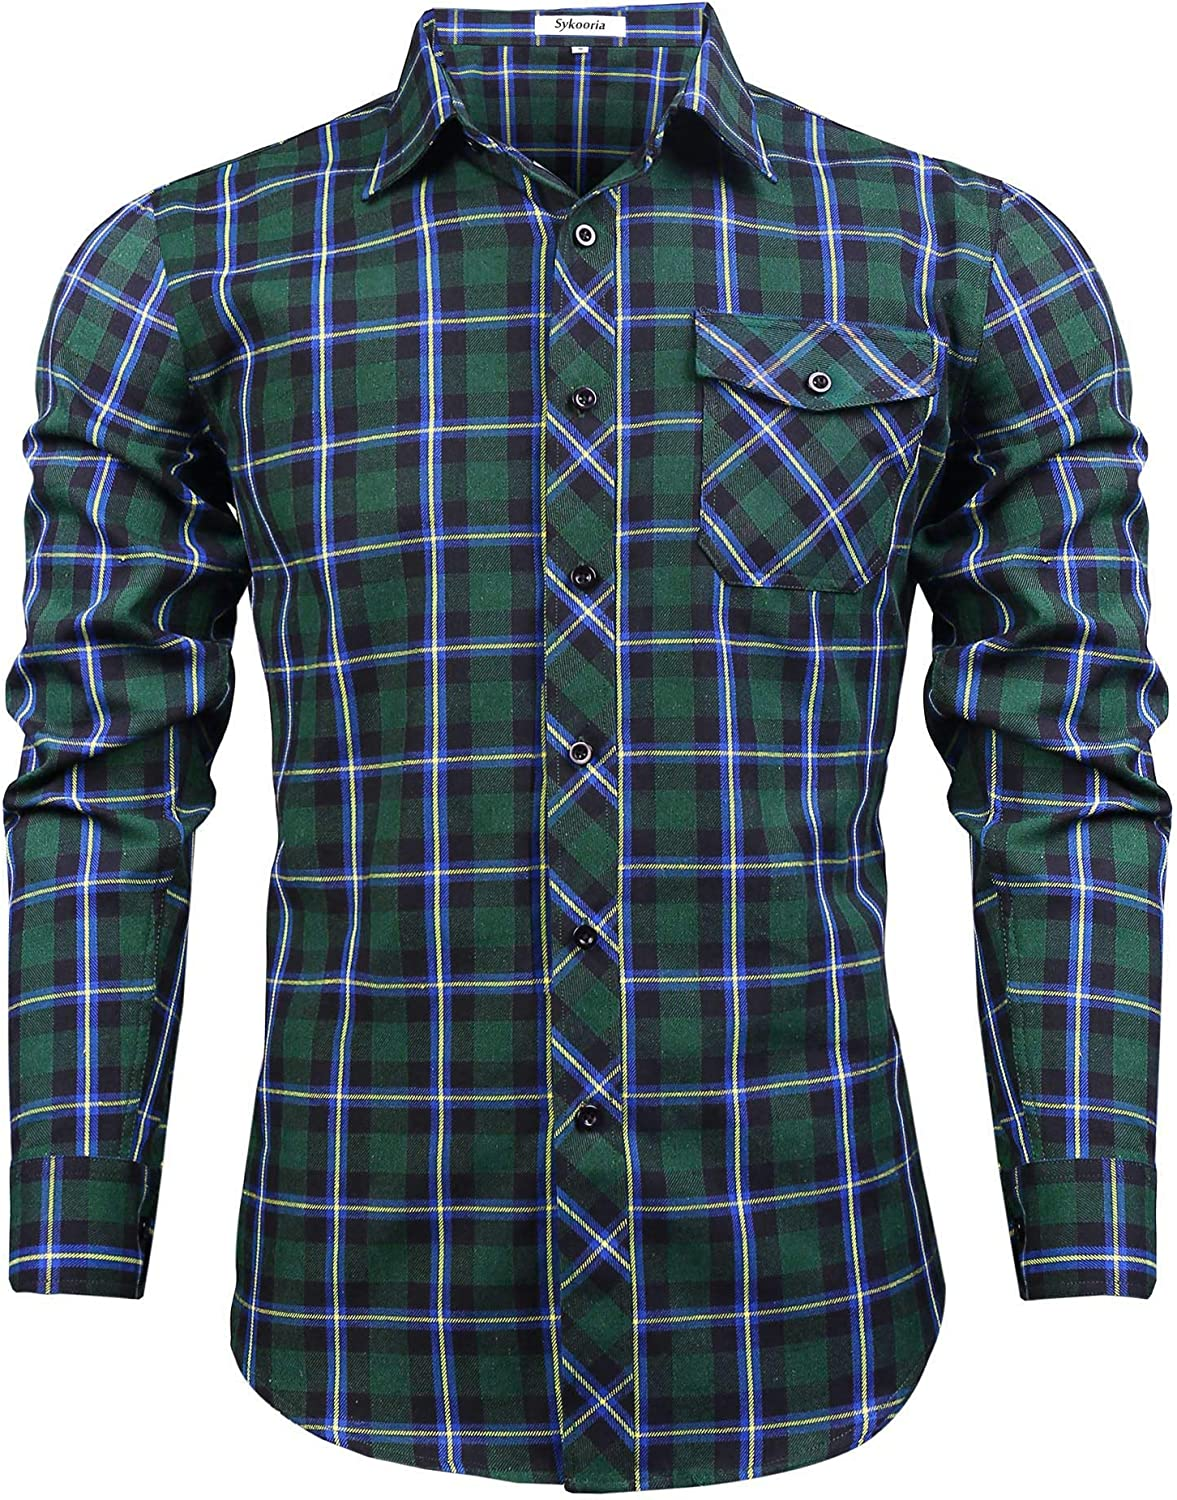 Sykooria Men's Flannel Super beauty product restock quality top! Plaid Shirts Sleeve Ranking integrated 1st place Long Casual Butt